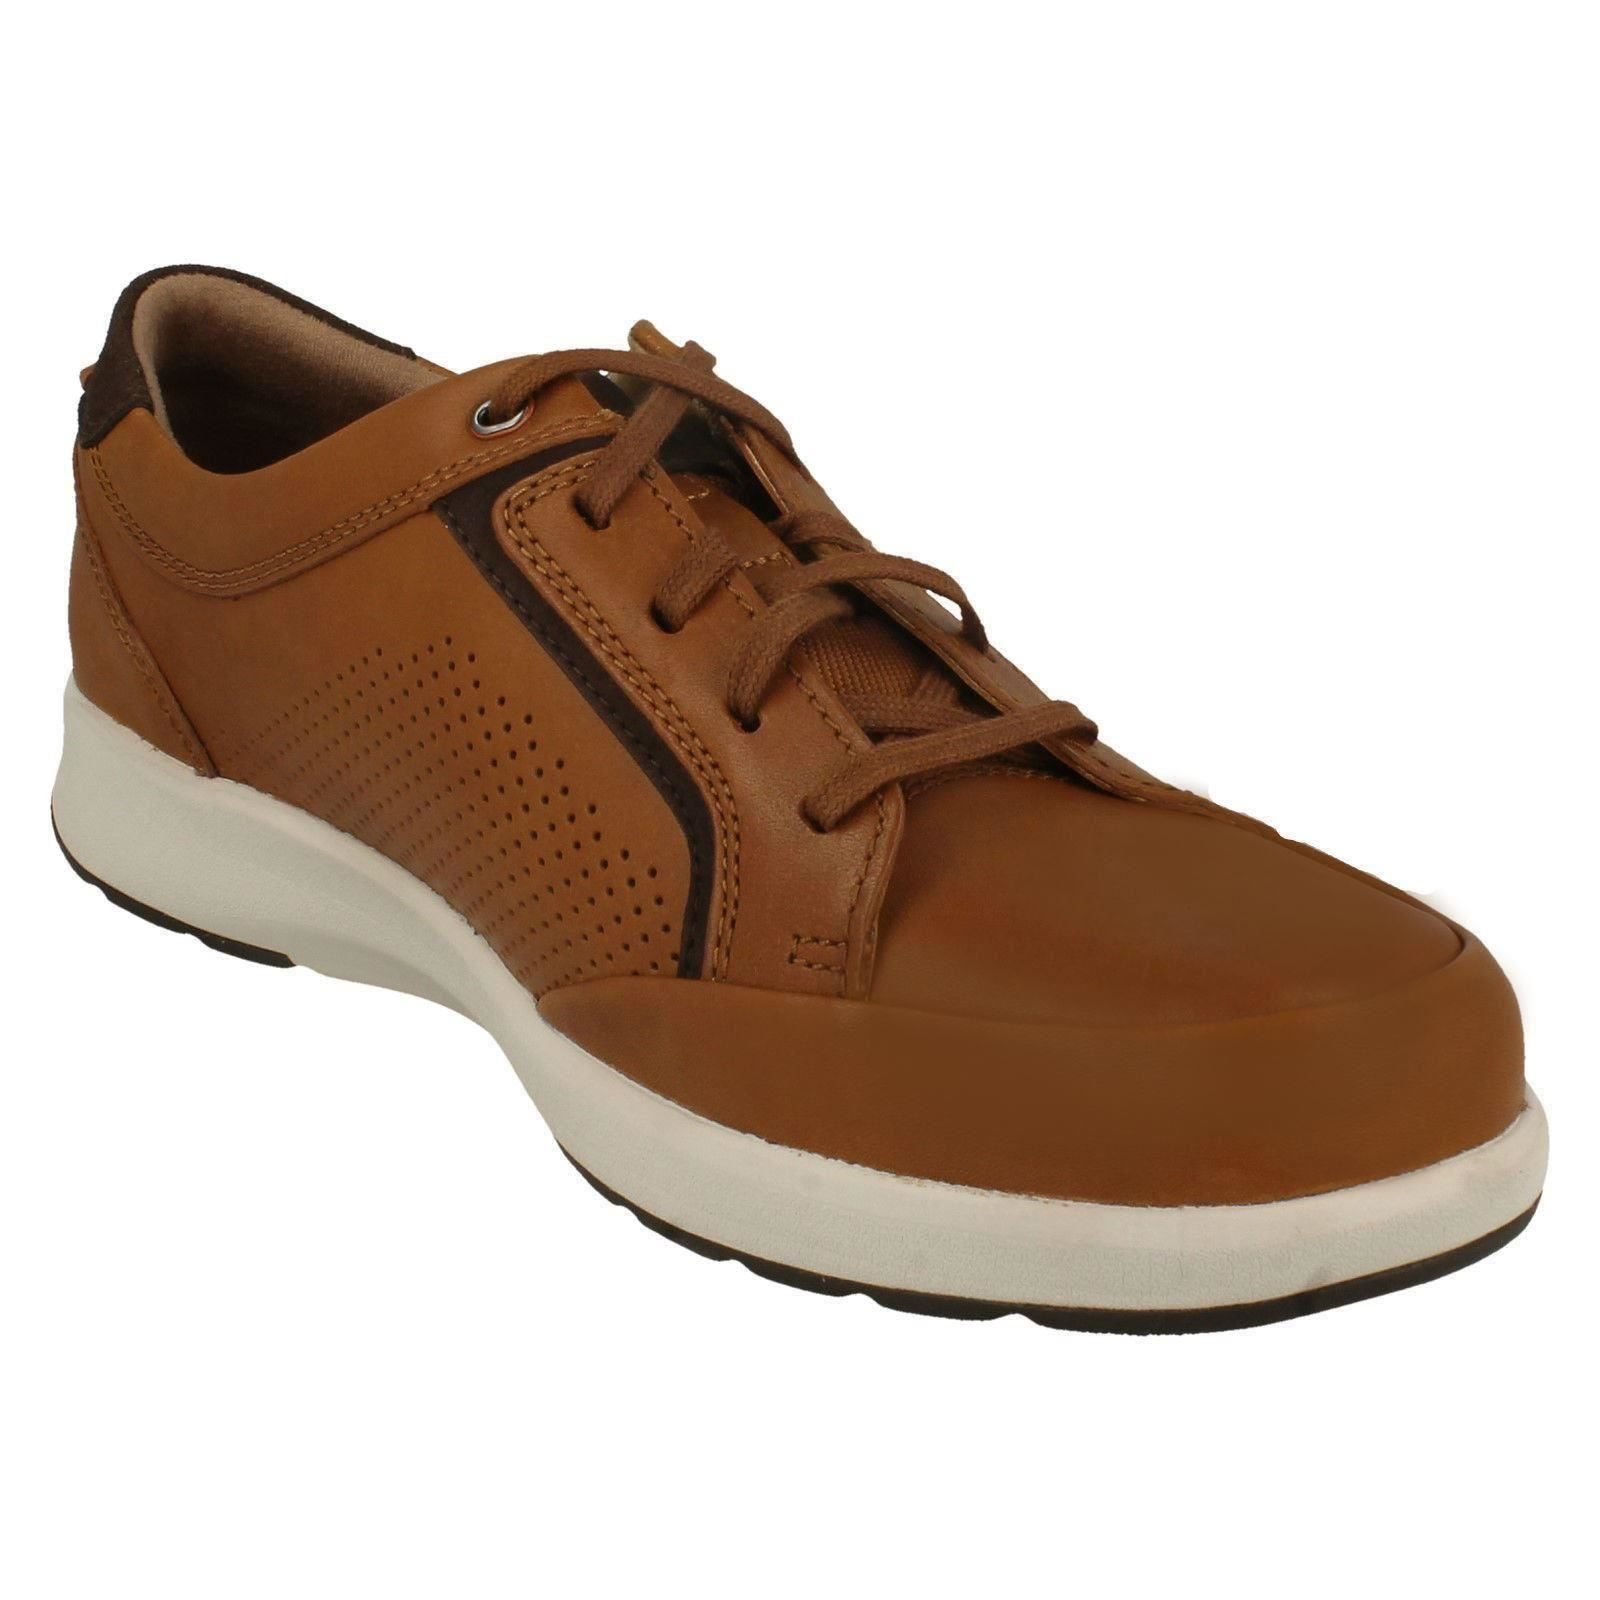 Un Shoe clarks Trail Casual Up Form Mens Lace Tan brown wHXfxIdqqP